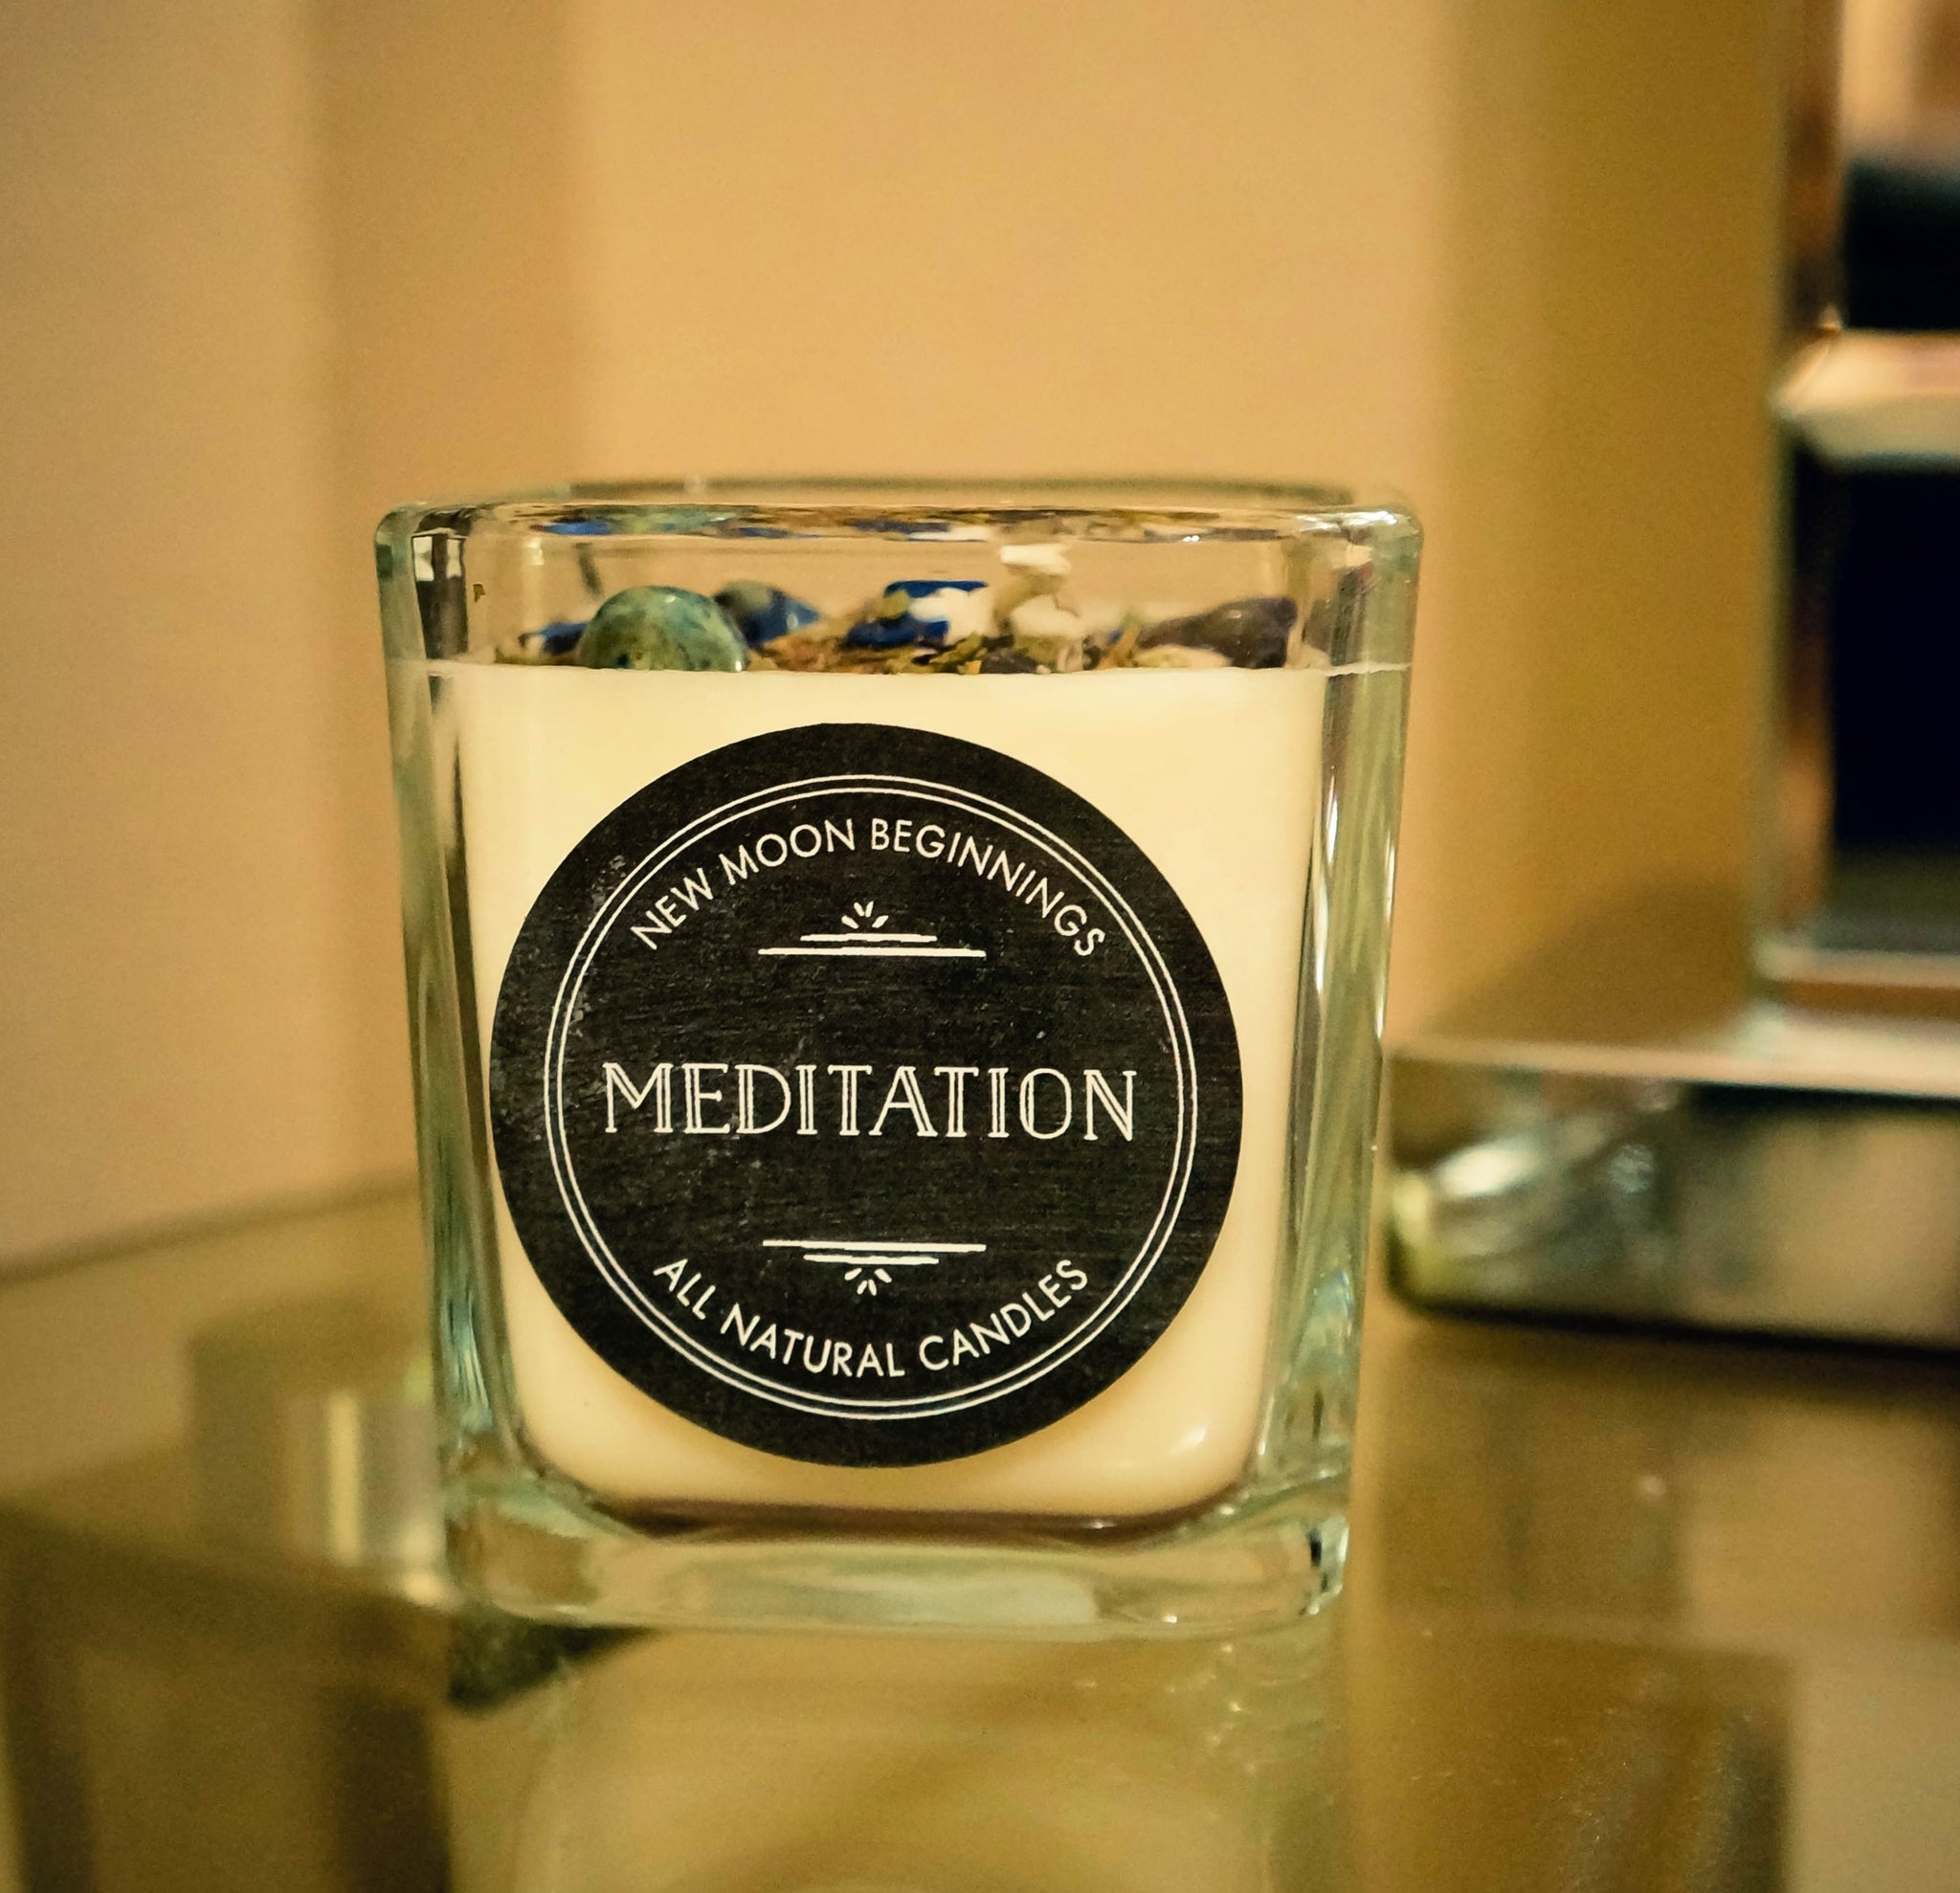 Nag Champa (Meditation) Crystal & Herb Energy Candle